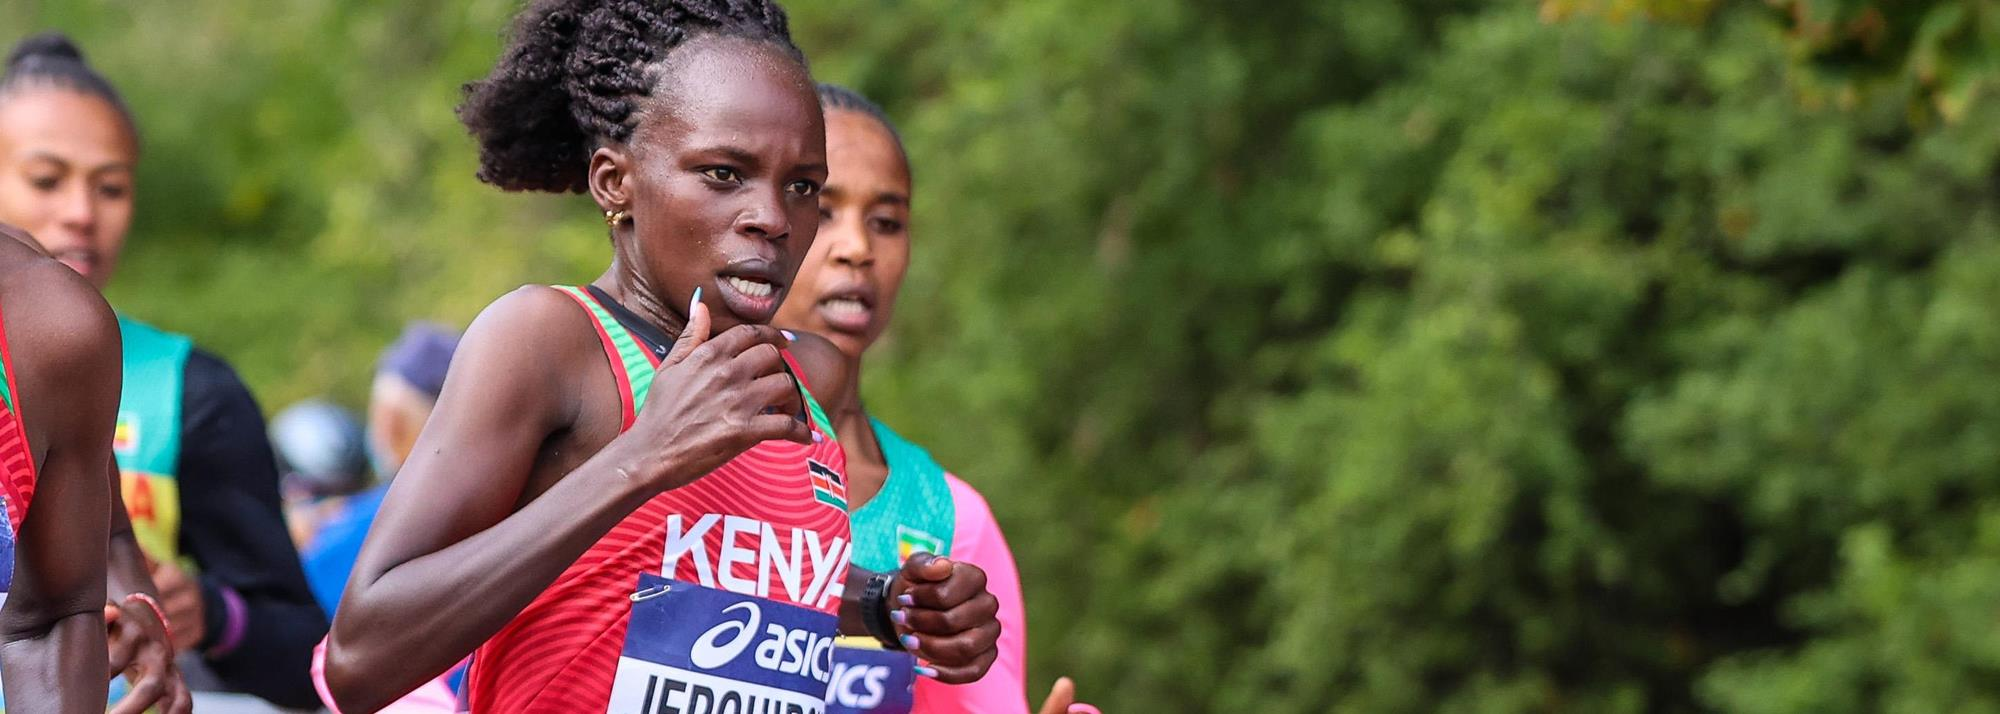 After second global title and third world record, Jepchirchir cements place in history as a half marathon all-time great